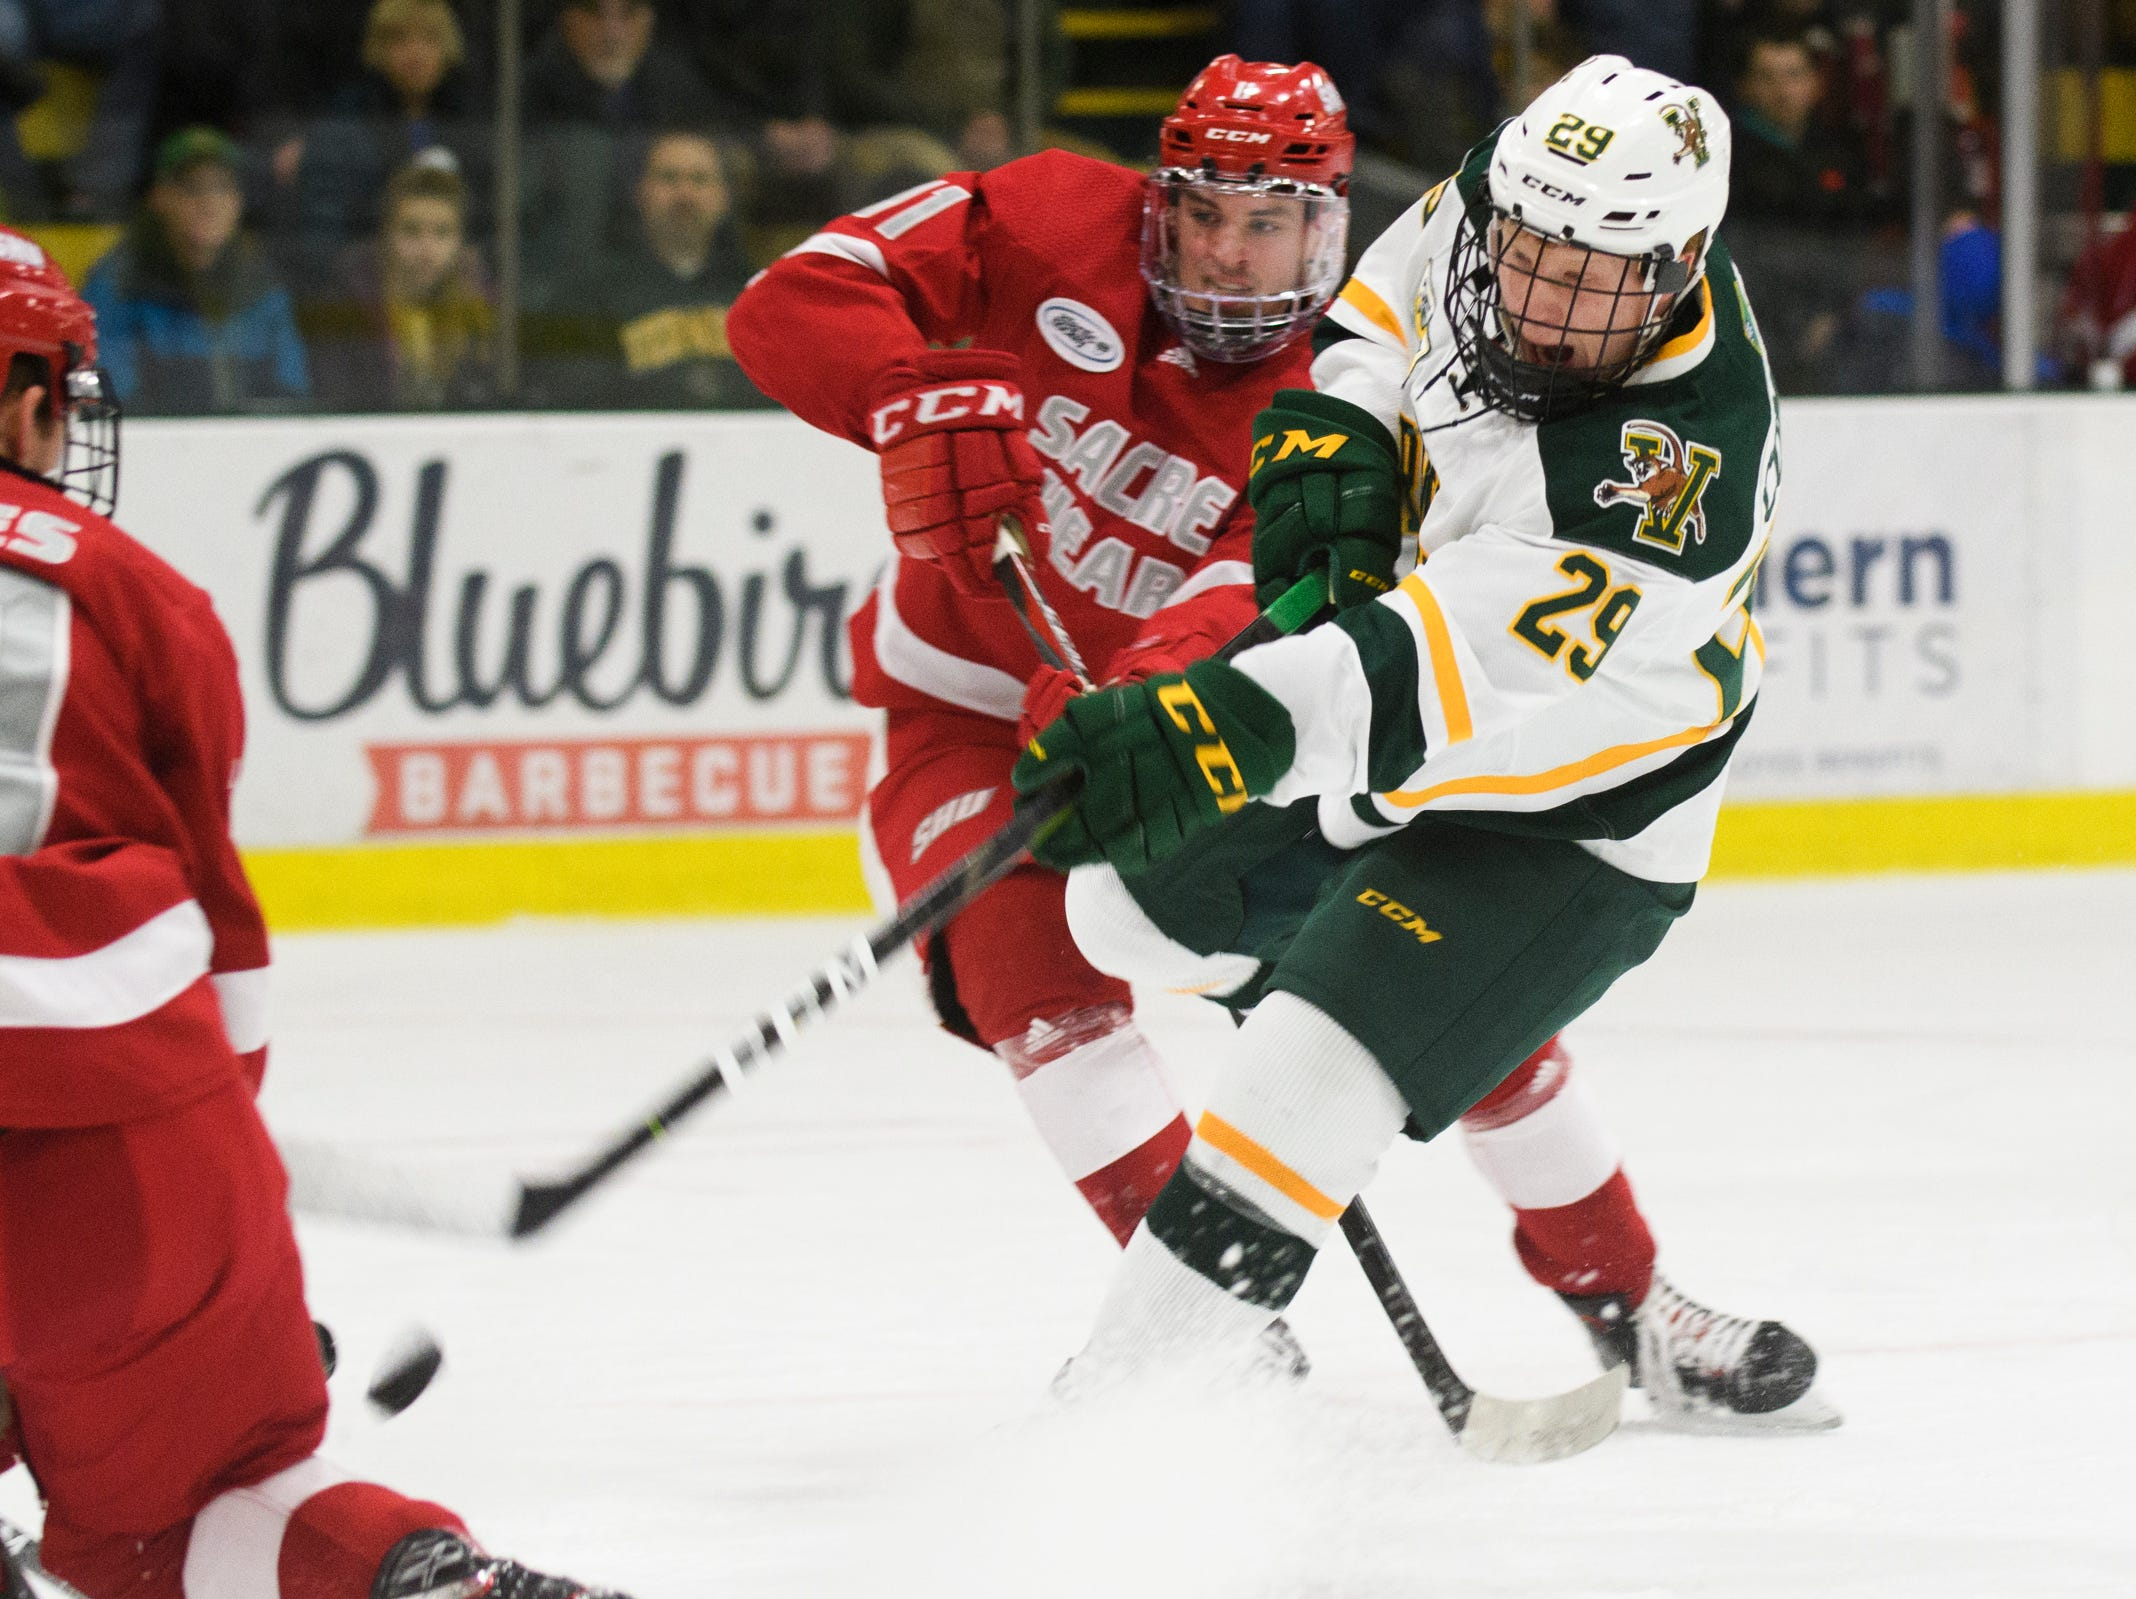 Vermont forward Dallas Comeau (29) shoots the puck during the men's hockey game between the Sacred Heart Pioneers and the Vermont Catamounts at Gutterson Field House on Friday night January 4, 2019 in Burlington.